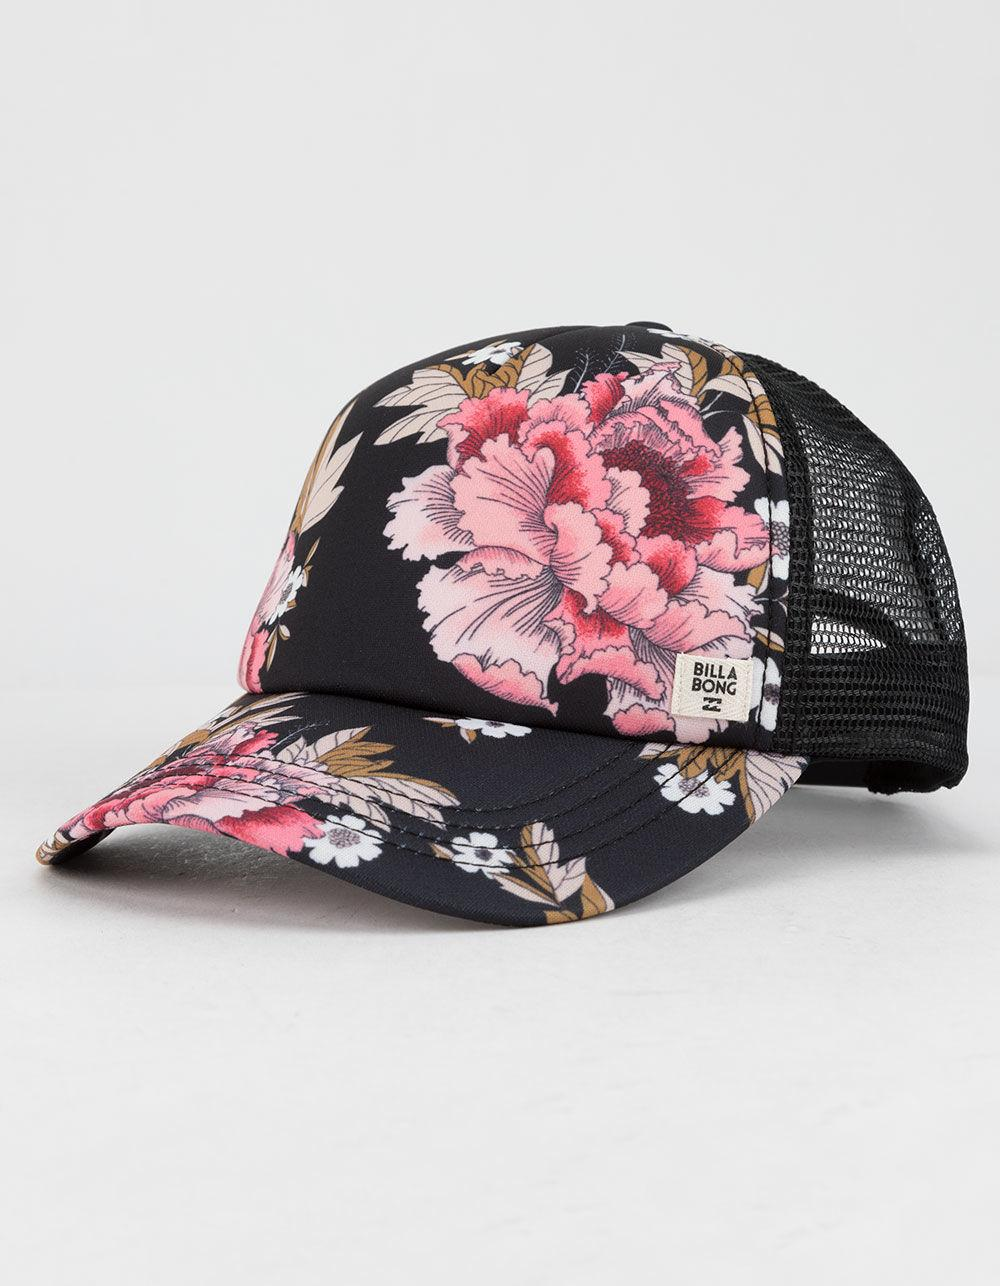 c2128895f6f5d Lyst - Billabong Heritage Mashup Black Womens Trucker Hat in Black